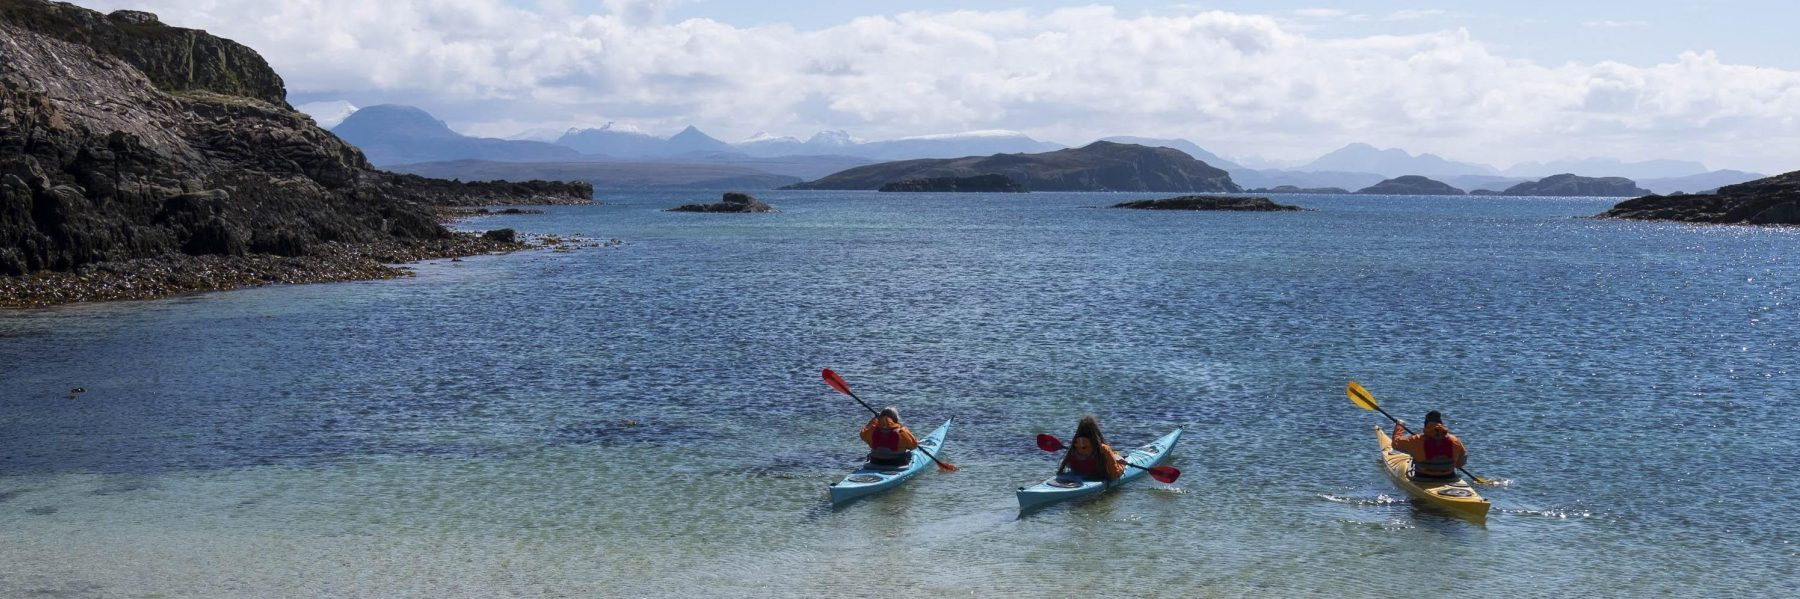 Sea Kayaking with Hamlet Mountaineering, North West Scotland